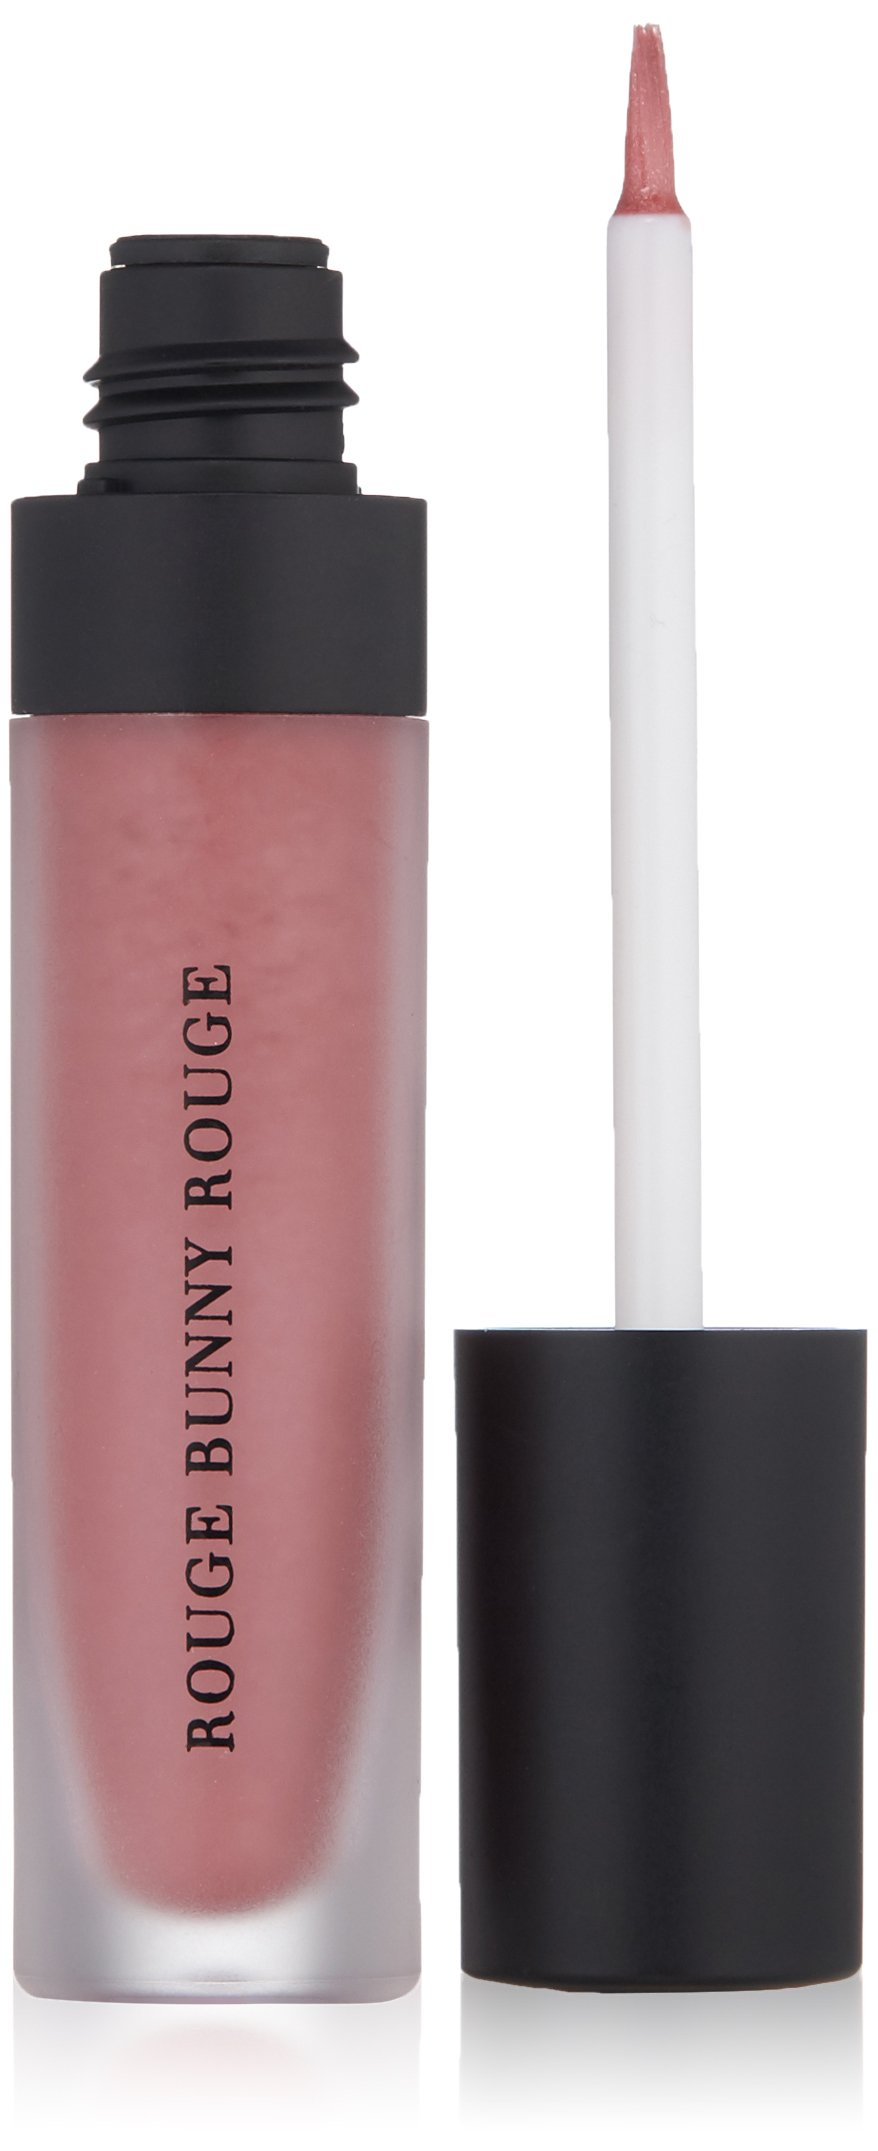 Rouge Bunny Rouge, XXX Swell Lip Plumper, Clover Royal Jelly